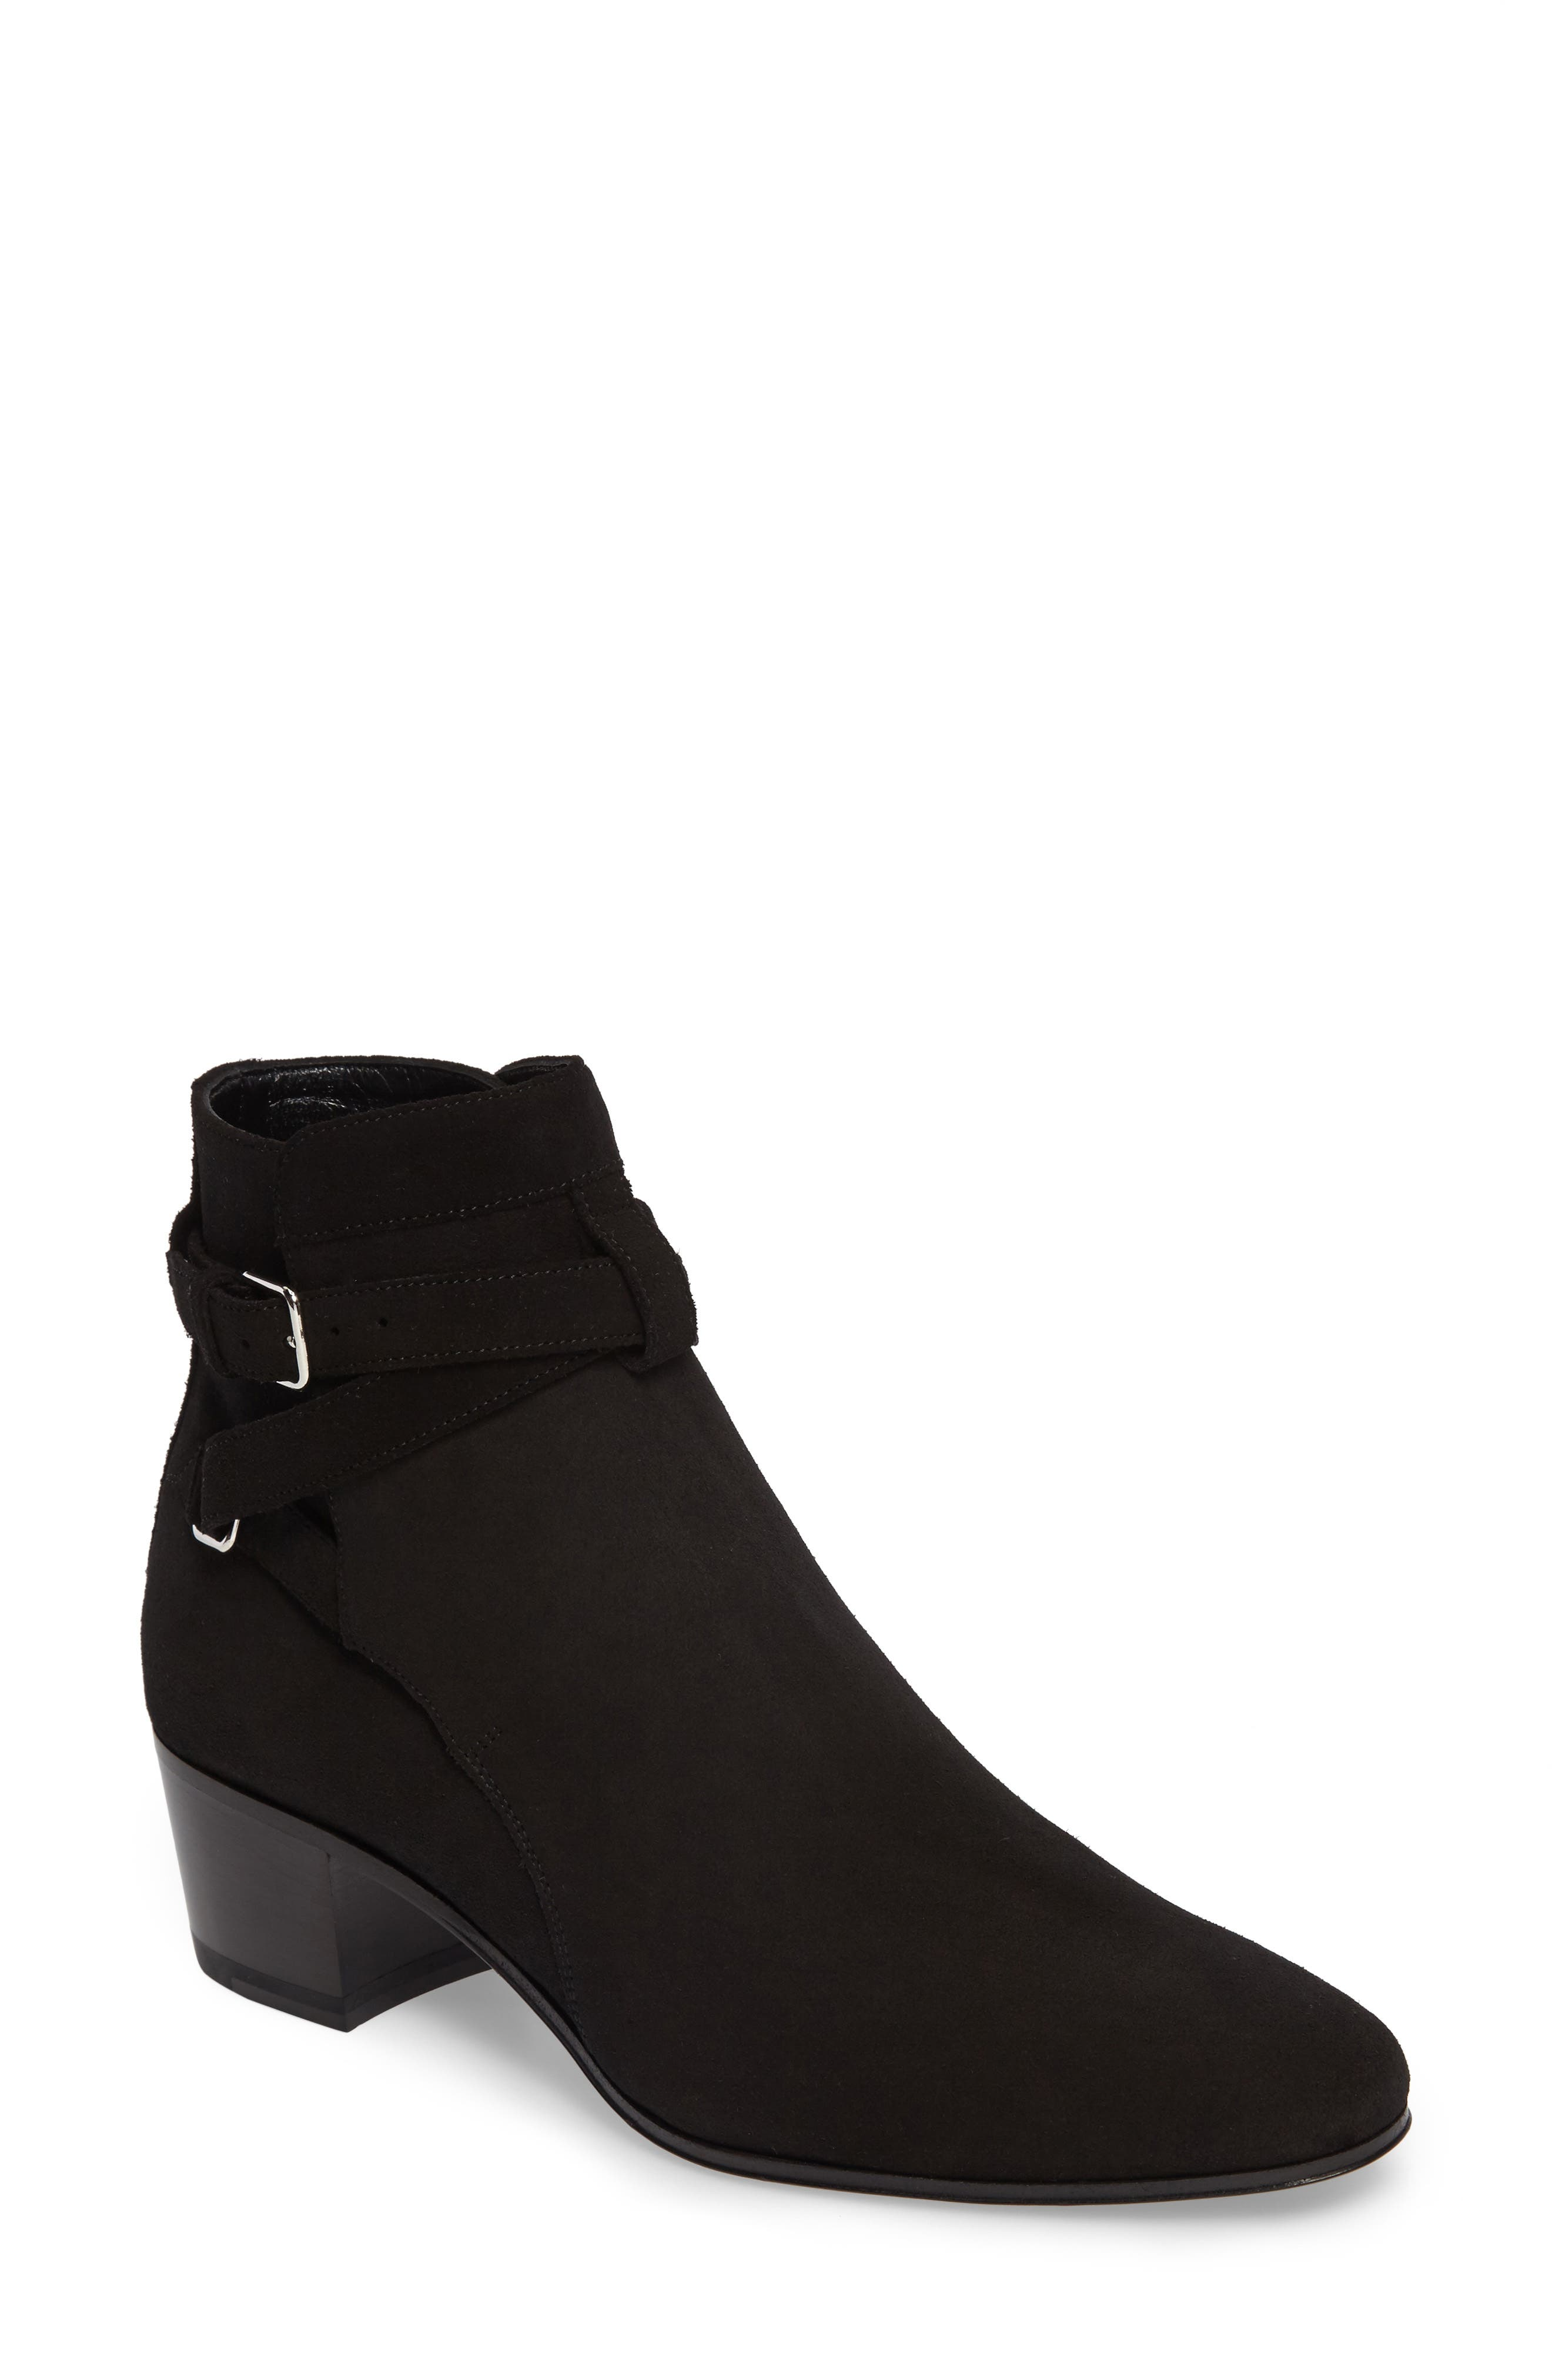 Saint Laurent Bootie